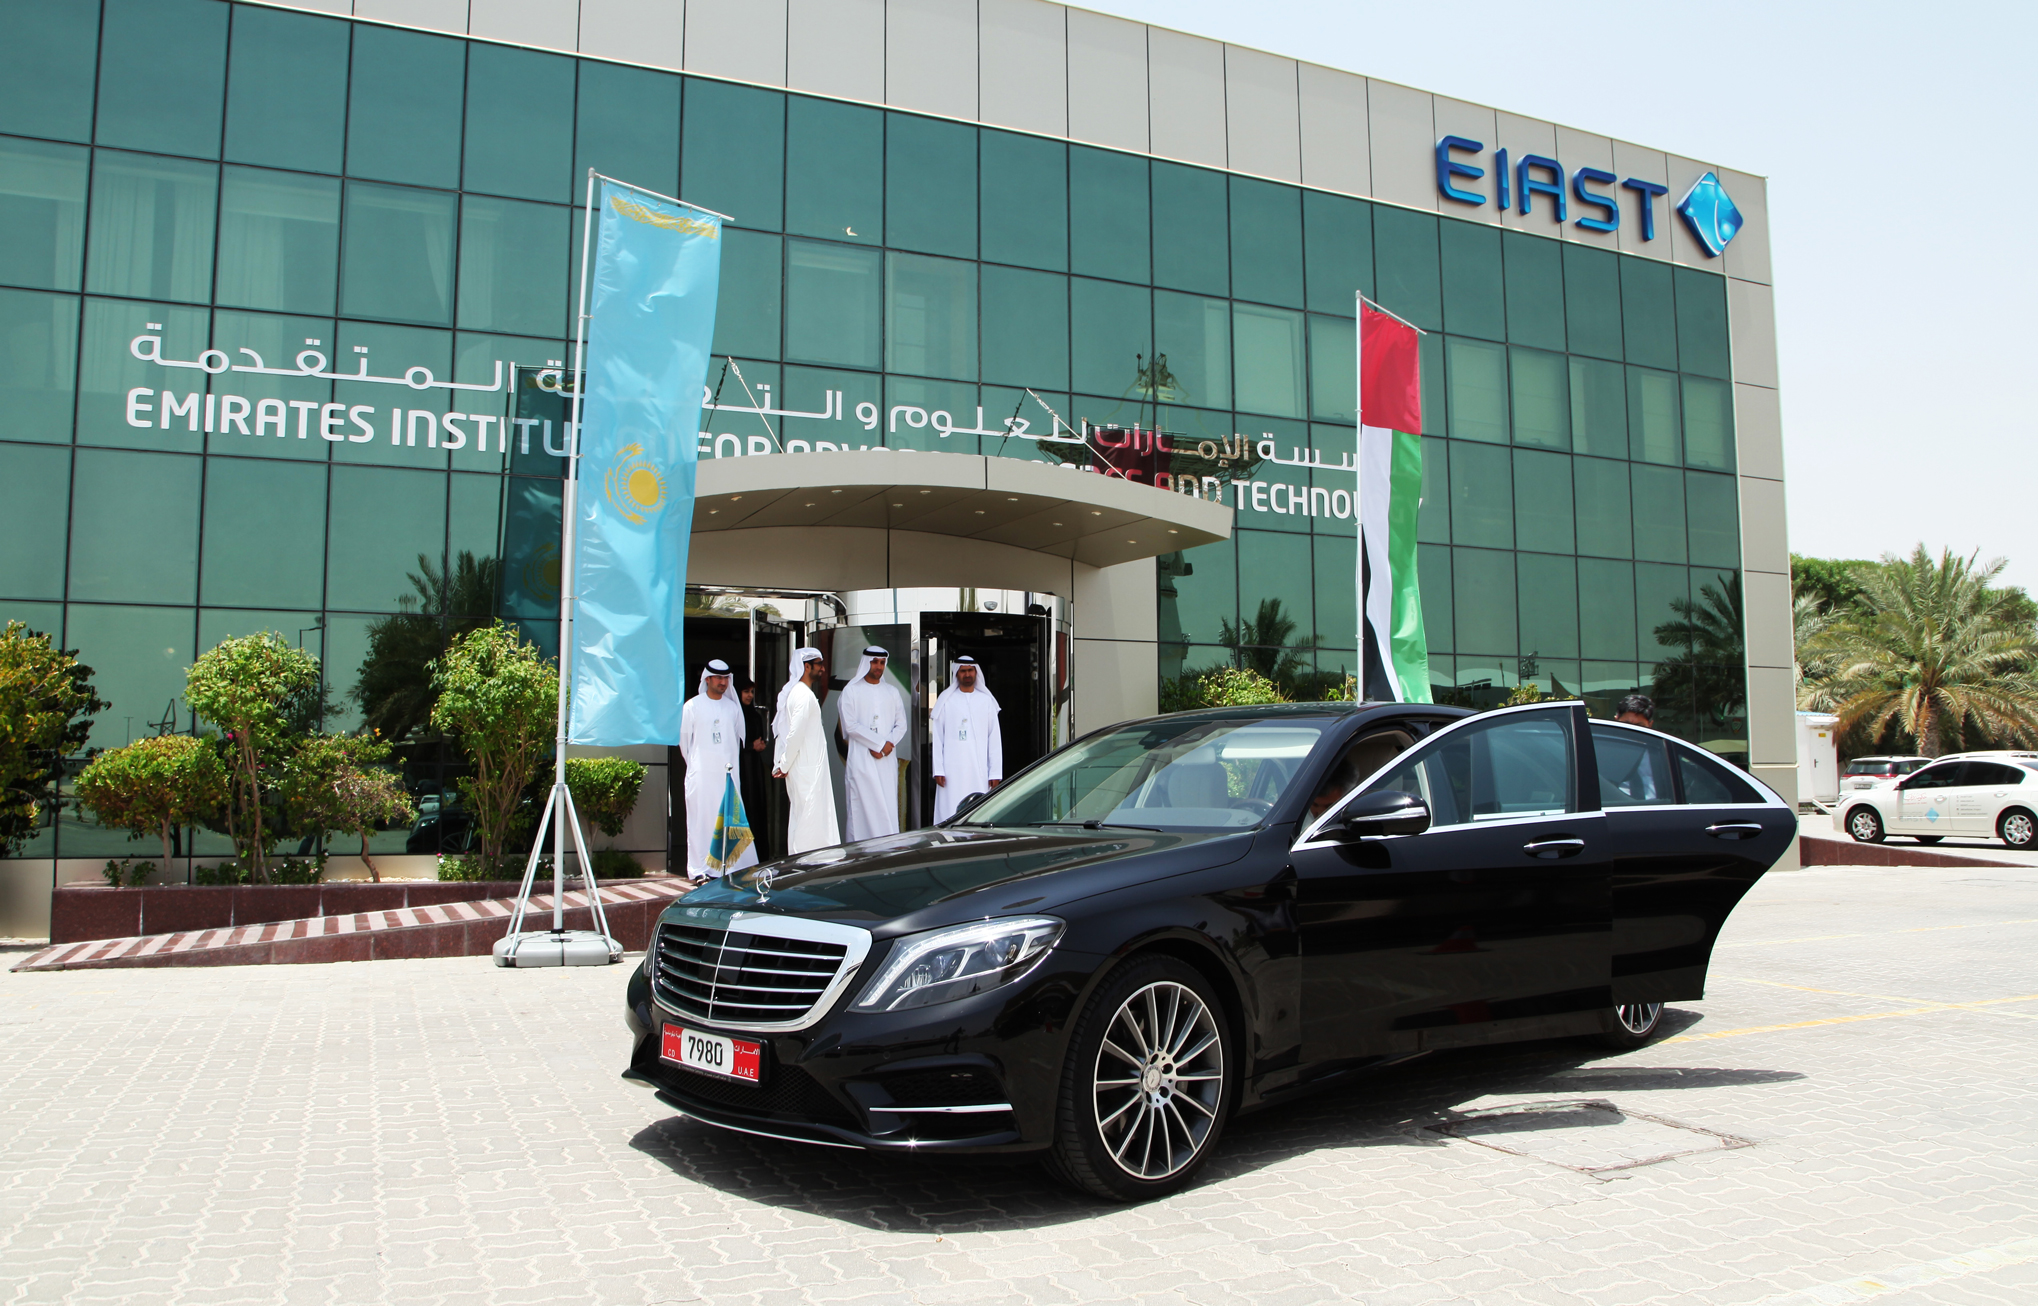 Emirates Institution For Advanced Science & Technology facility